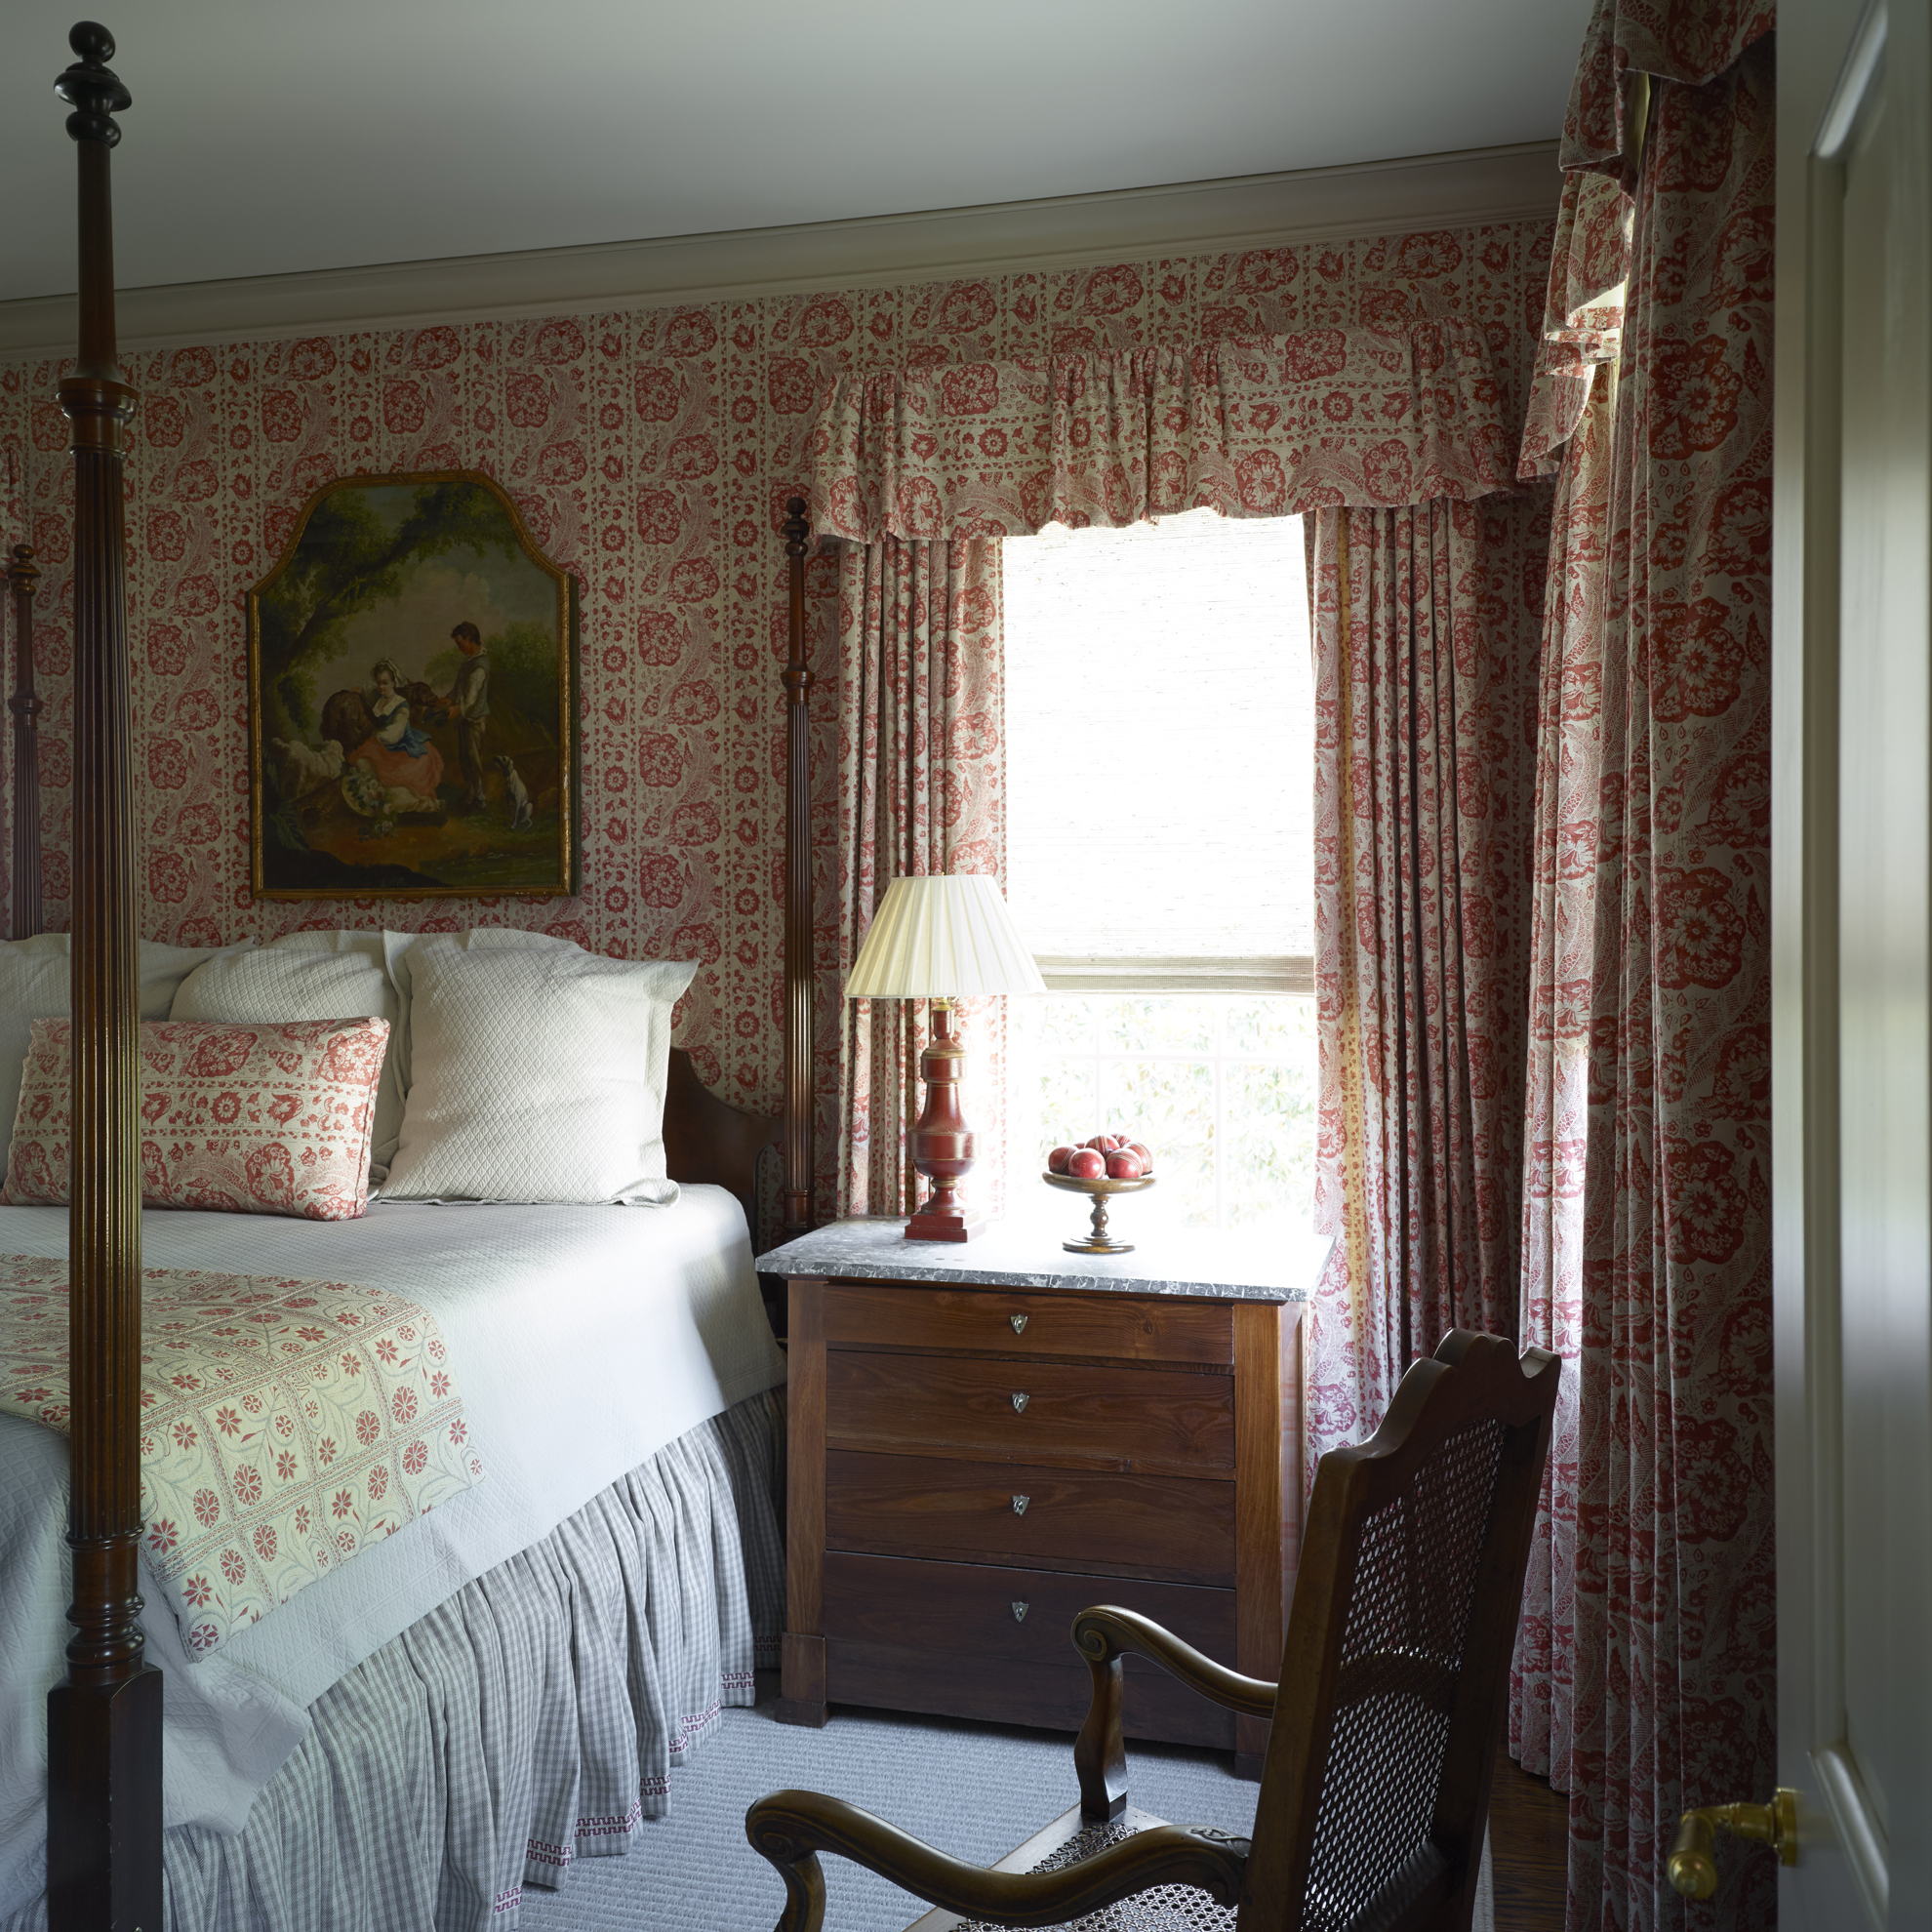 James Carter Architect  Francis A Bryant & Sons Residential Construction  Private Residence